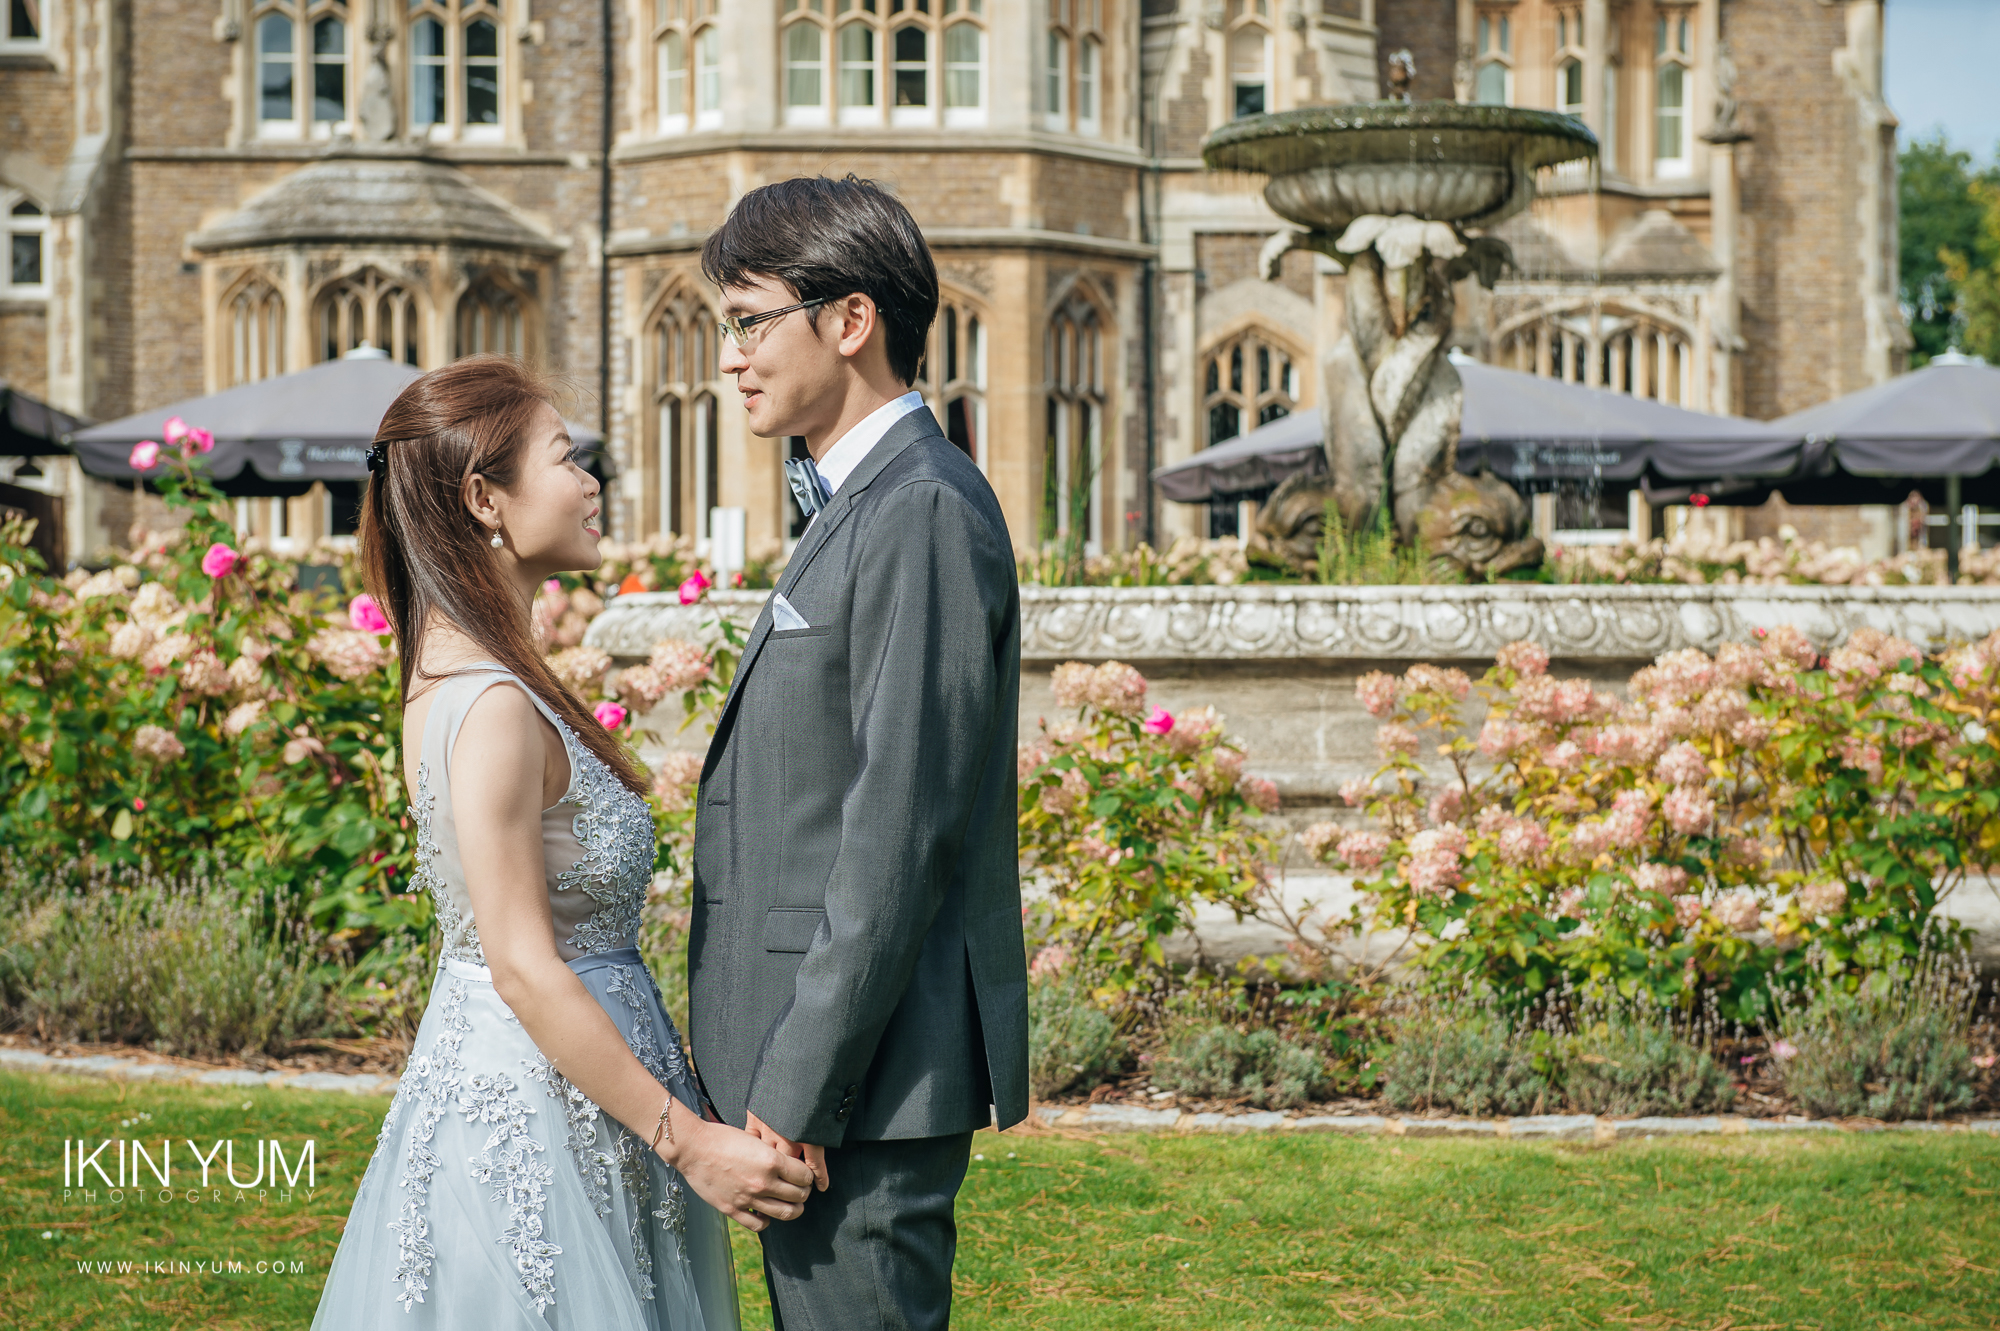 The oakley court Pre-Wedding Shoot - Ikin Yum Photography-026.jpg